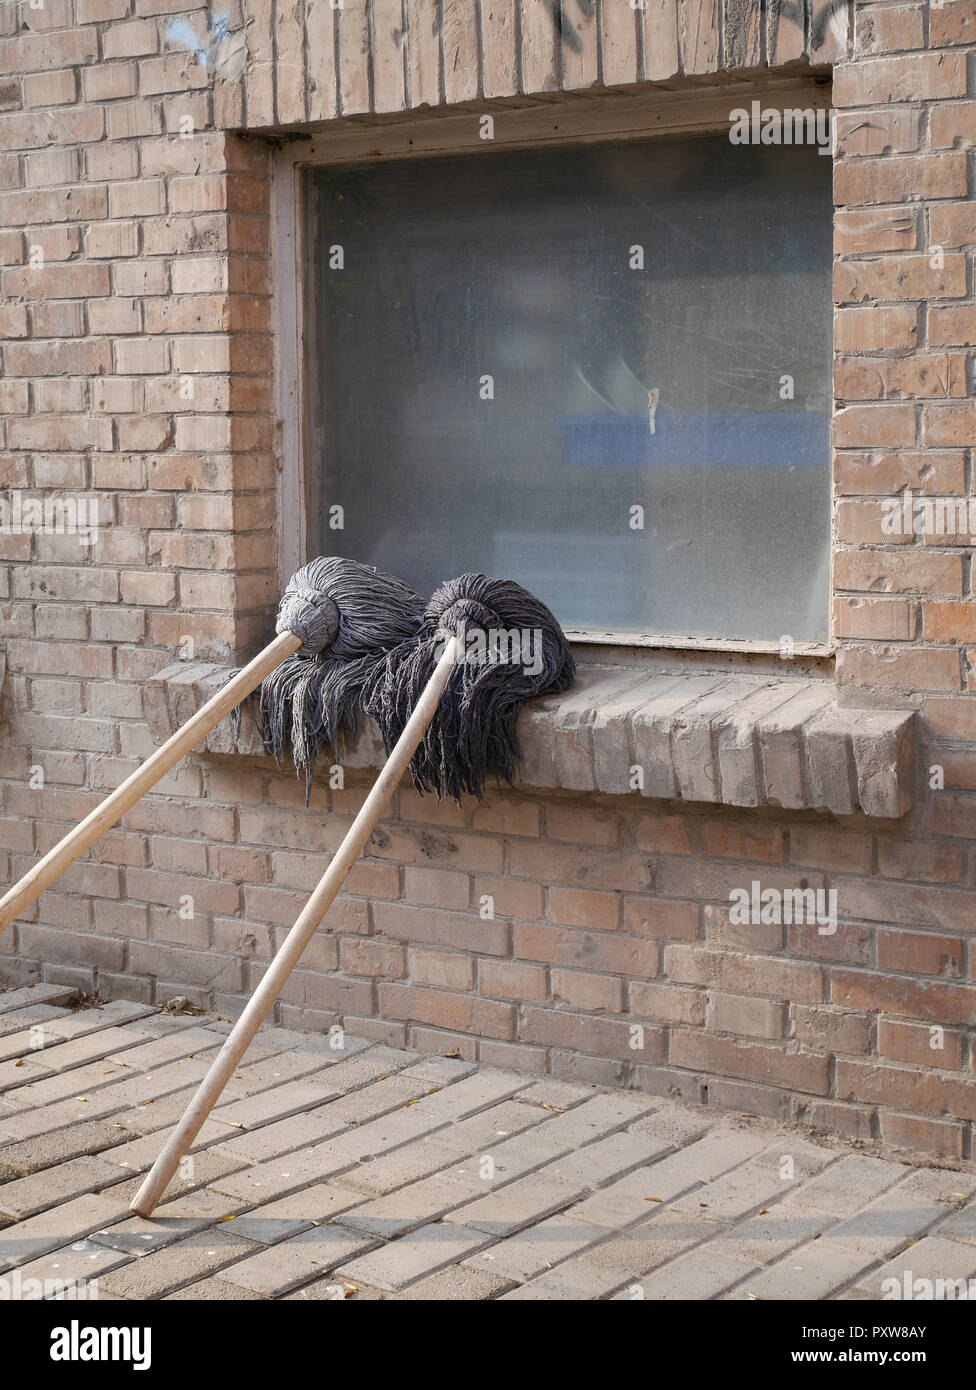 Two cleaning mops leaning on window sill - Stock Image